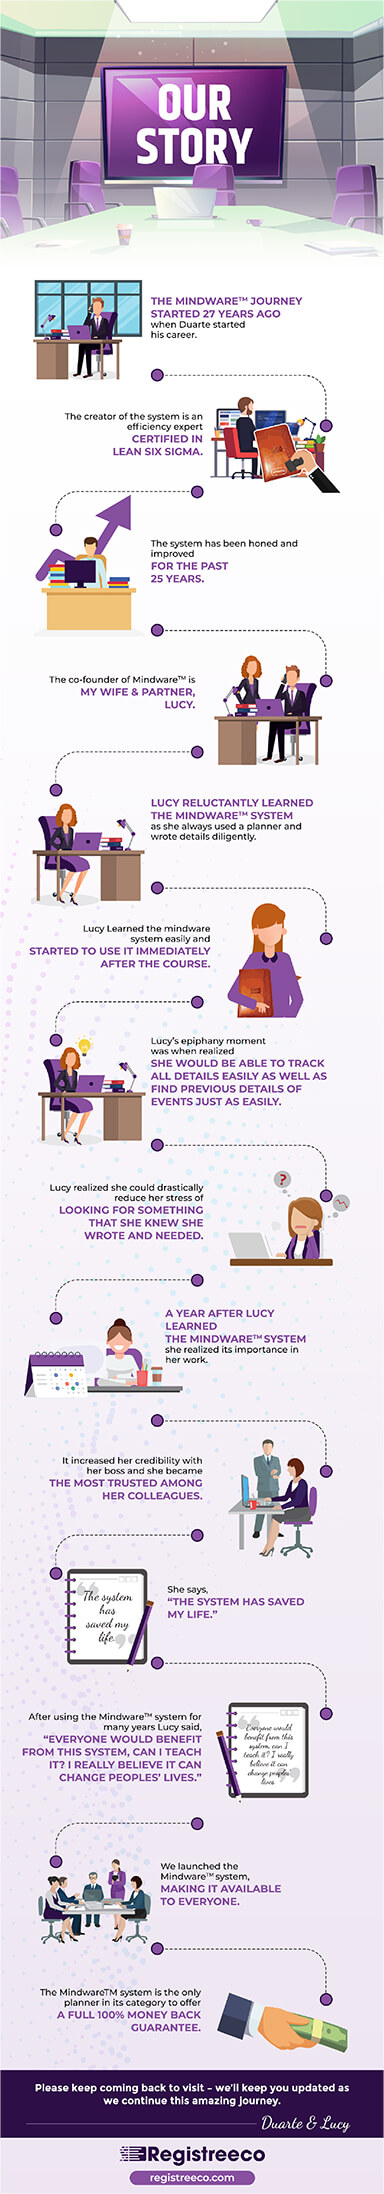 Infographic image of the Mindware agenda planner story